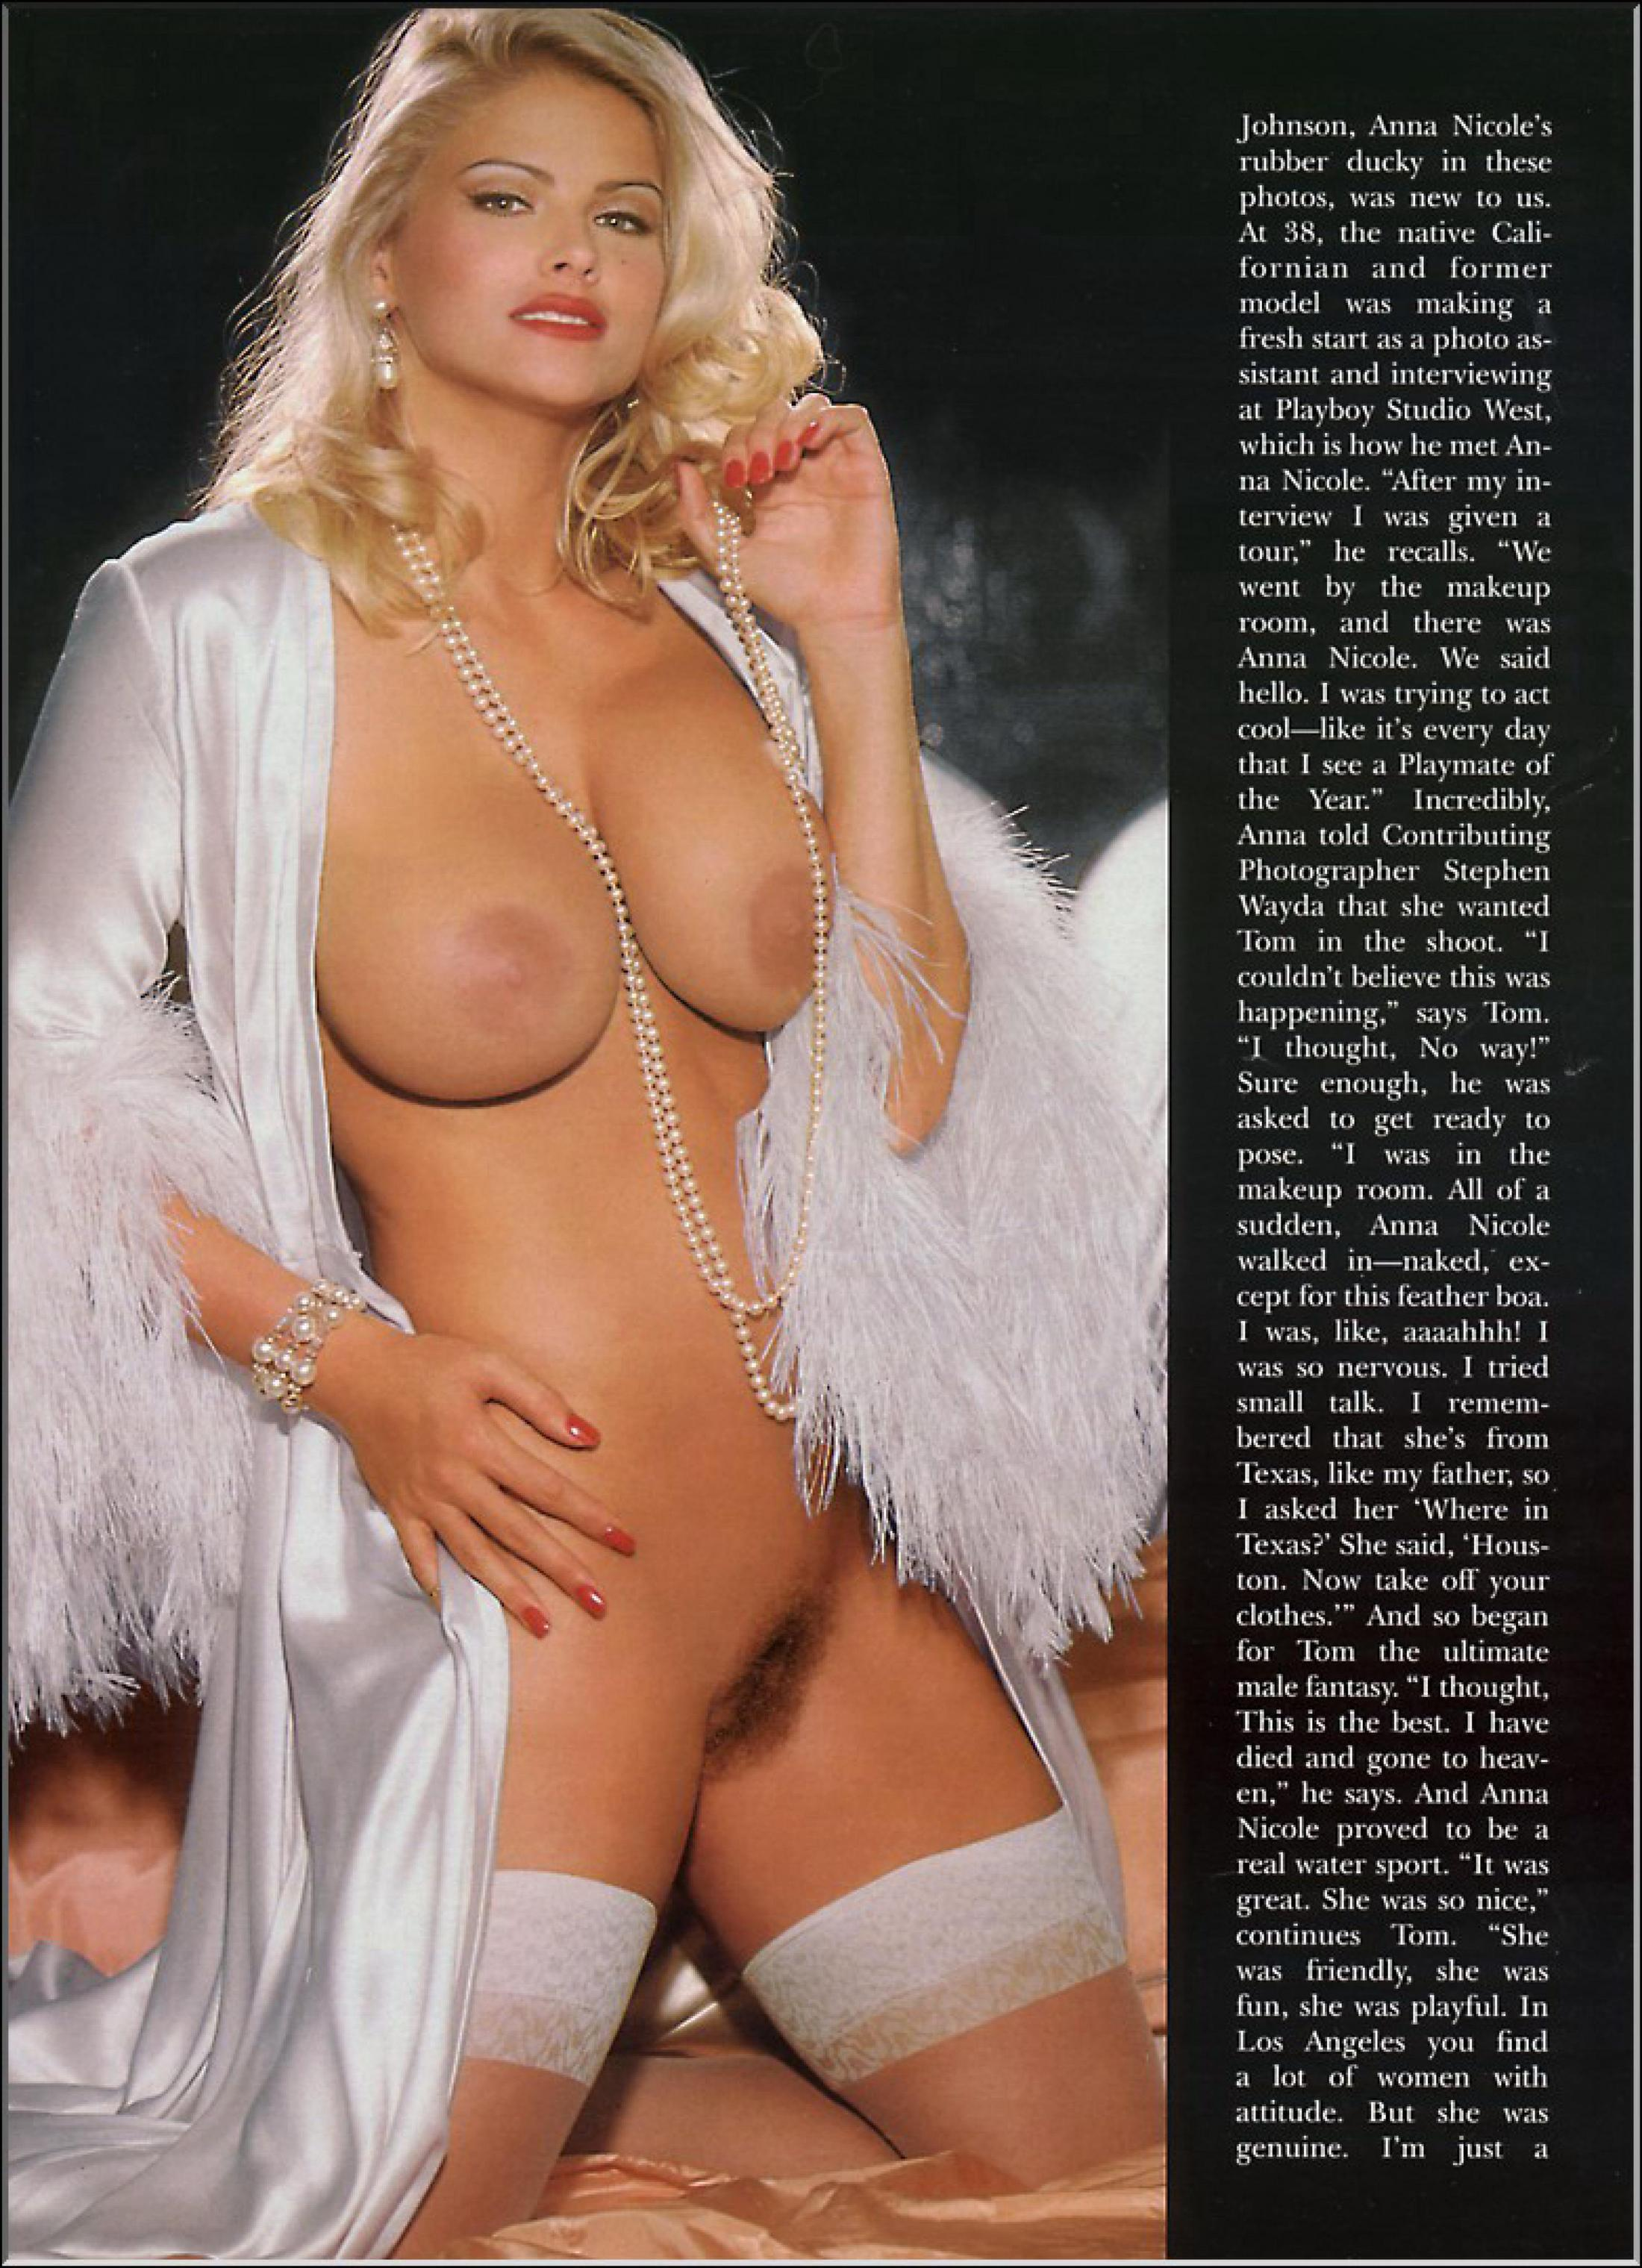 anna nicole smith hot nude photos